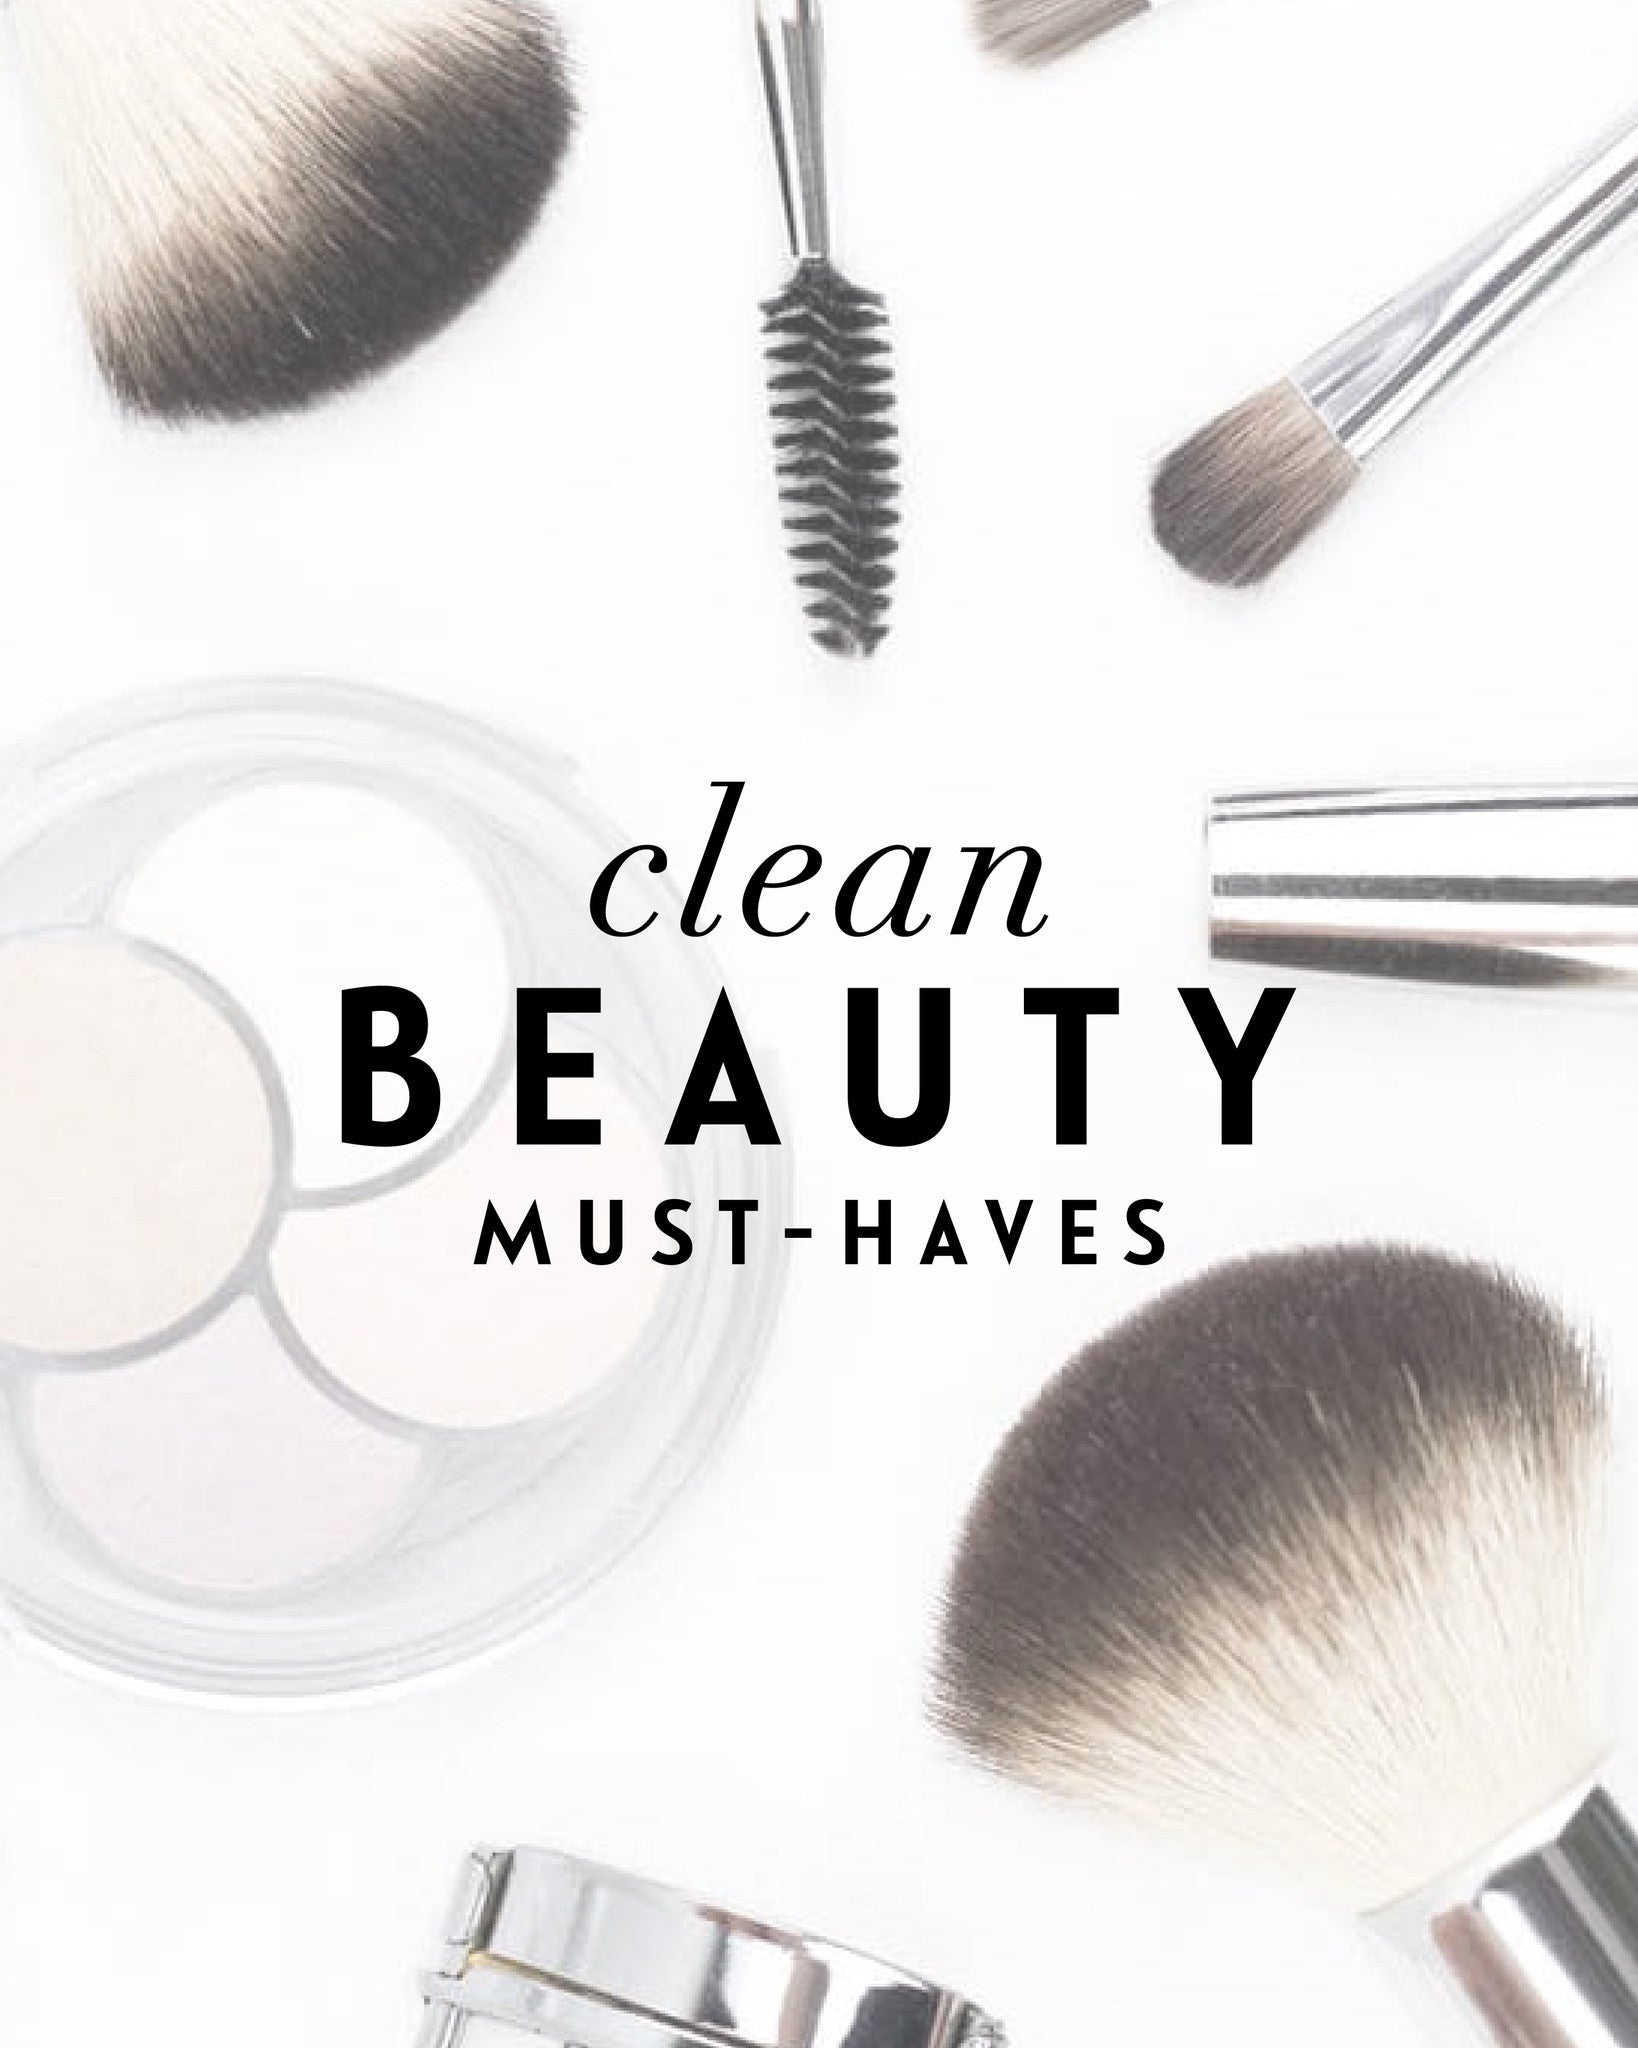 Clean Beauty Must-Haves